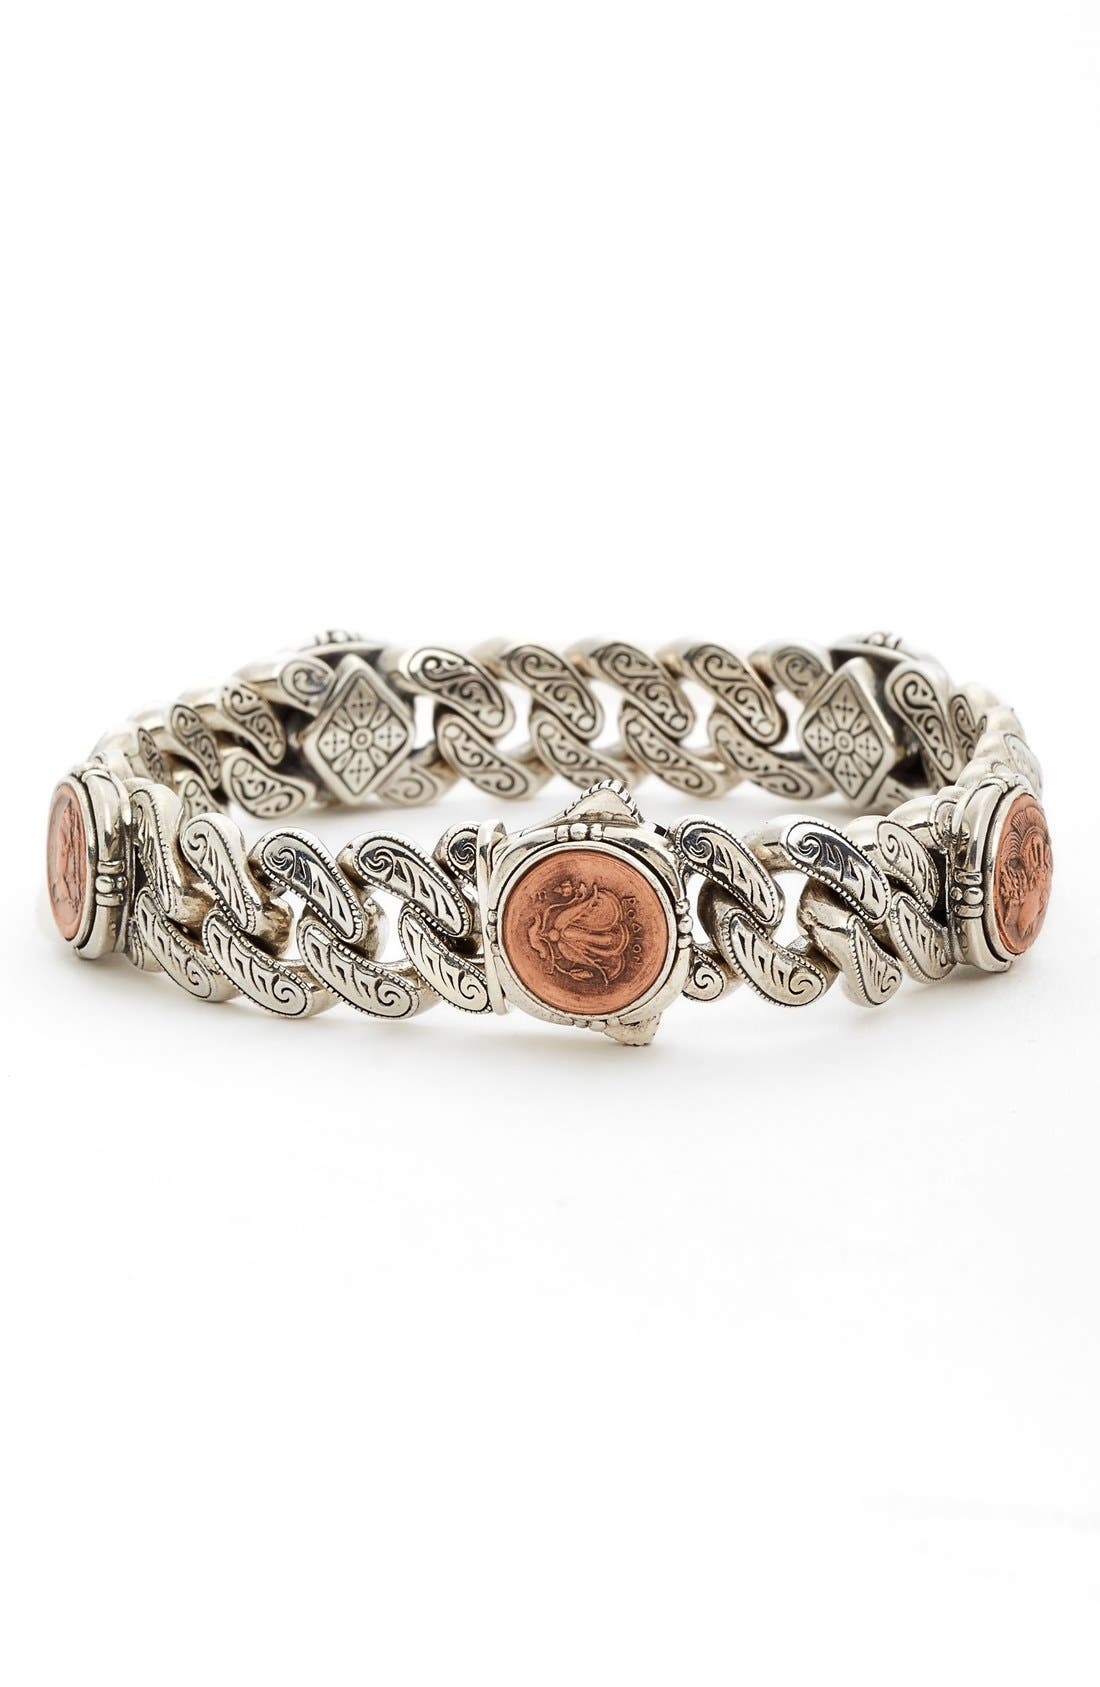 'Aeolus' Coin Link Bracelet,                             Main thumbnail 1, color,                             Silver/ Gold